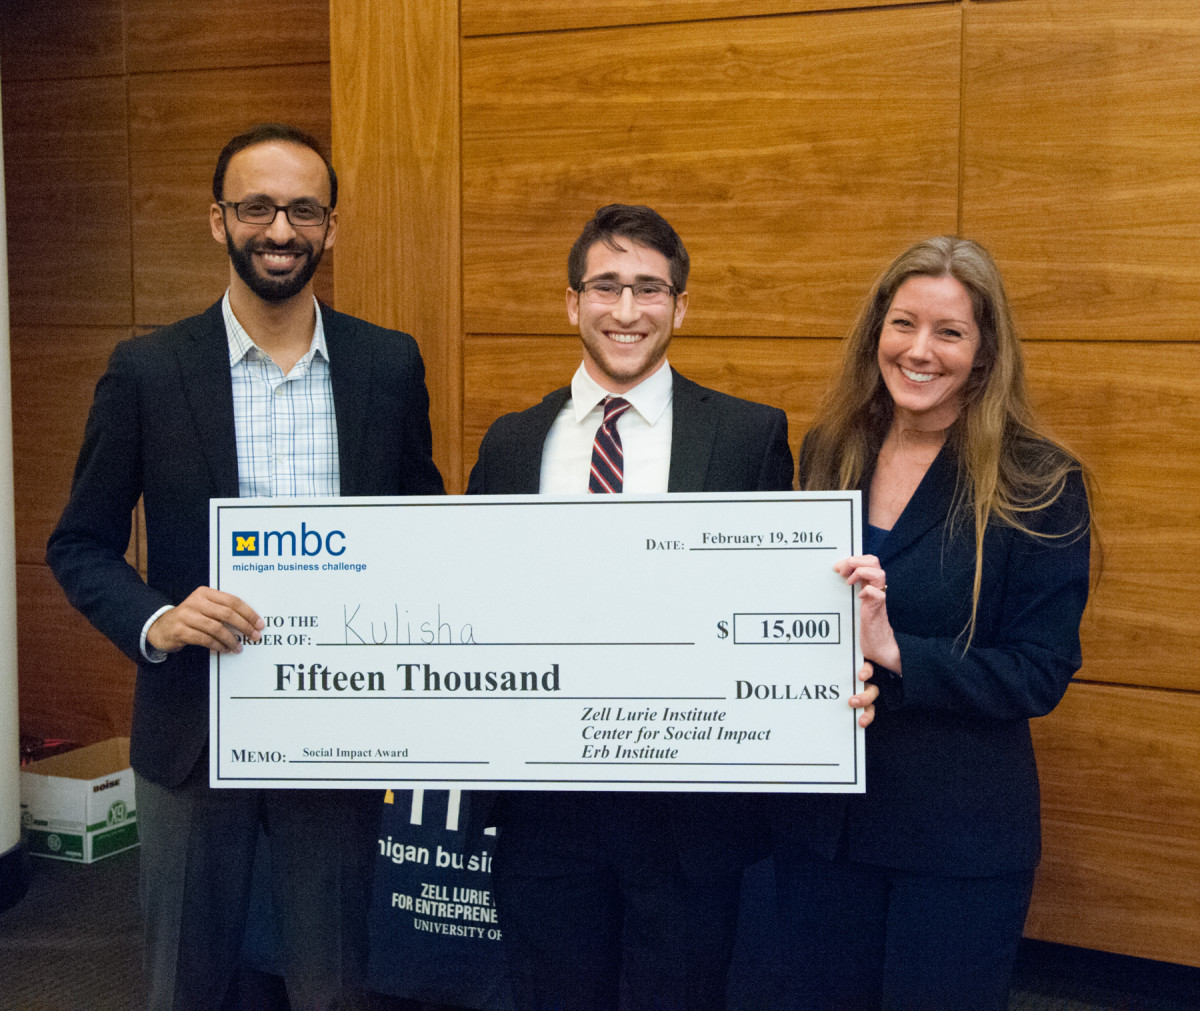 "Three smiling people hold large check that reads, ""Pay to the order of: Kulisha, $15,000 Fifteen Thousand Dollars, Memo: National Impact Award, Zell Lurie Institute, Center for Social Impact, Erb Institute."""